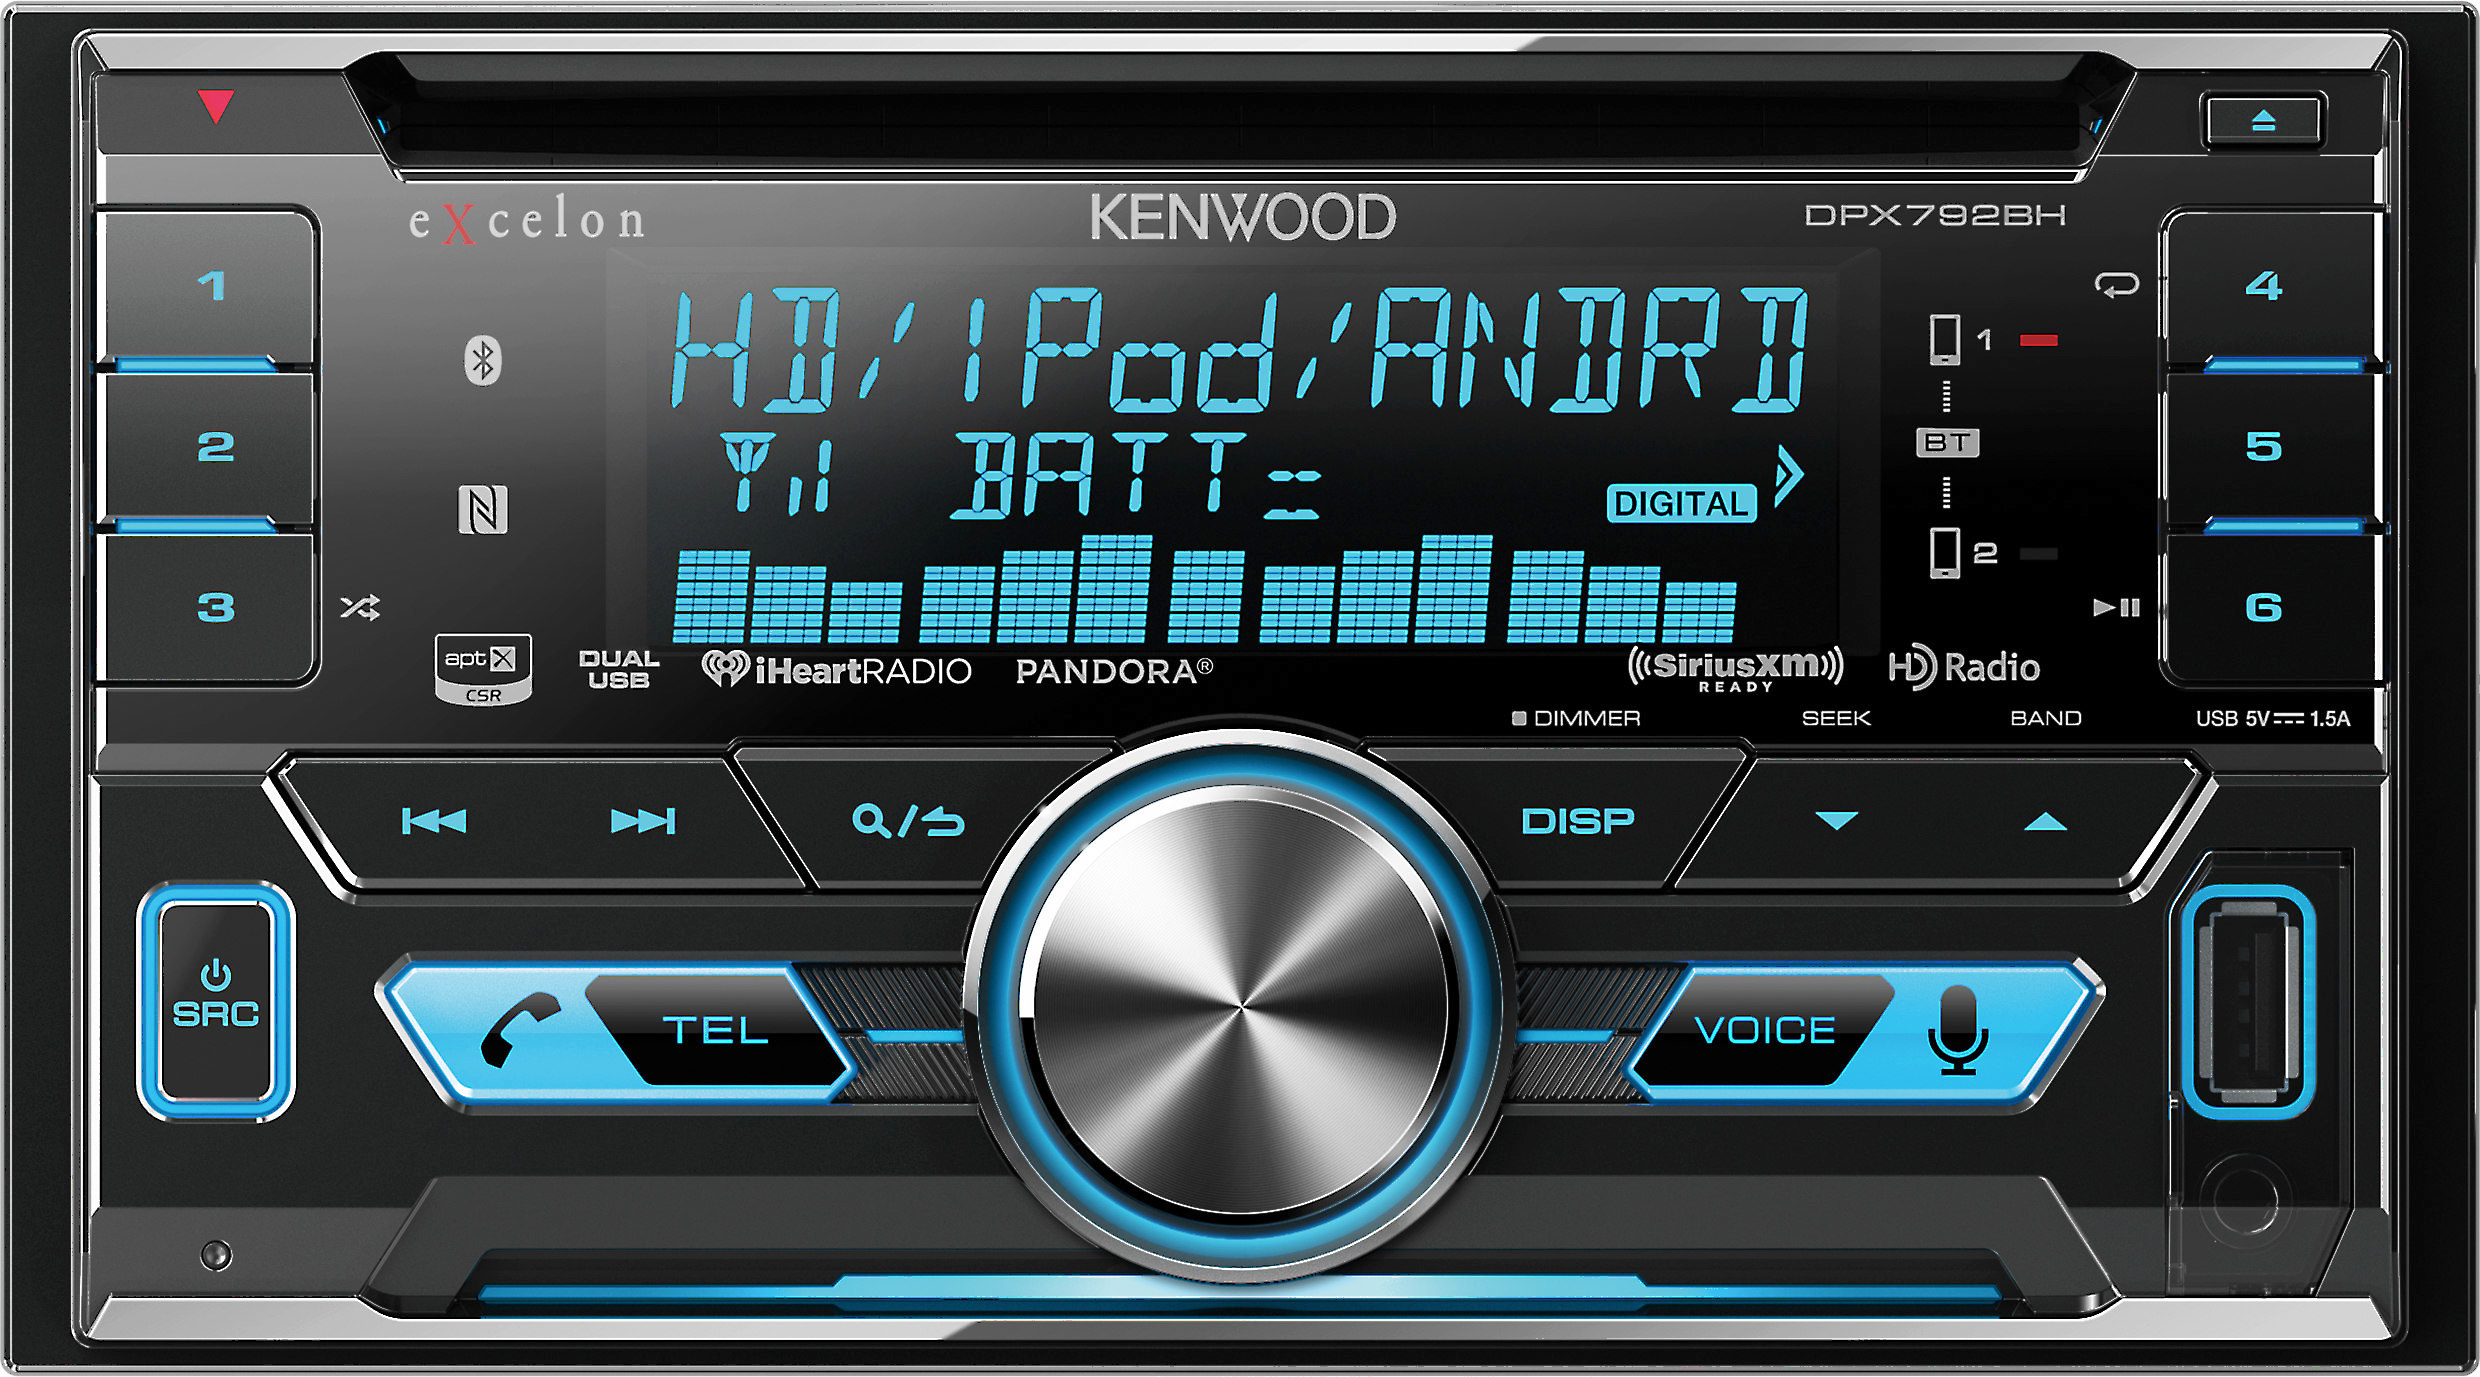 Kenwood Excelon DPX792BH CD receiver at Crutchfield on